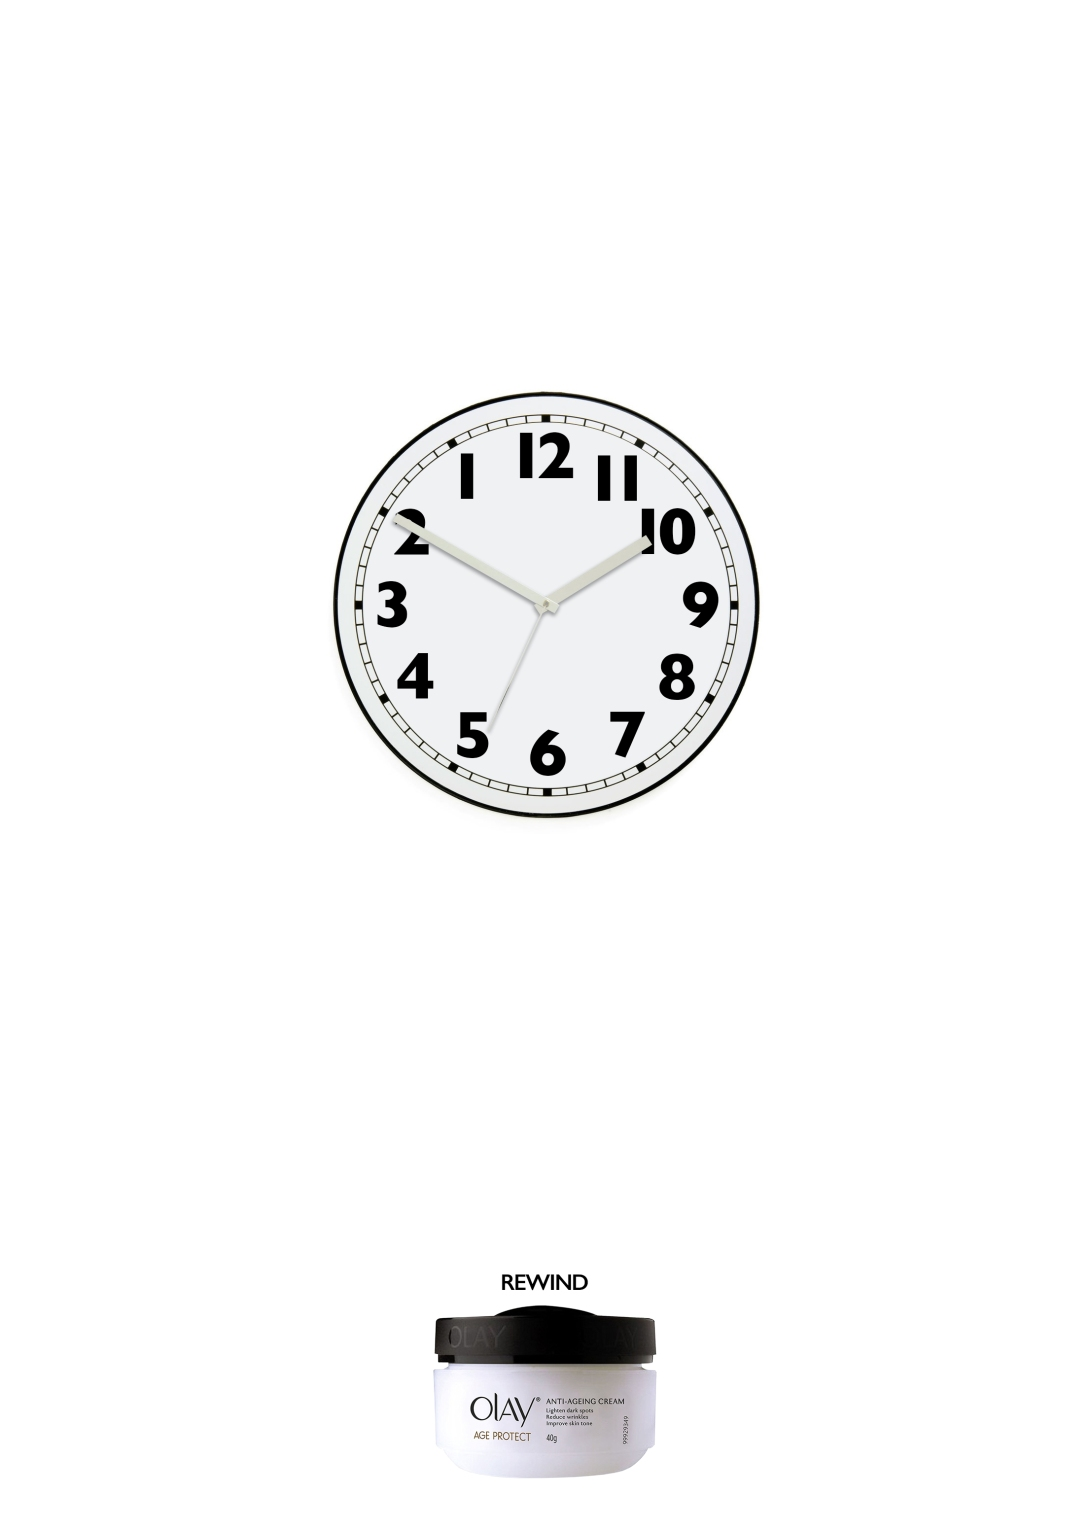 An advertising idea for anti-ageing cream - a clock that runs backwards